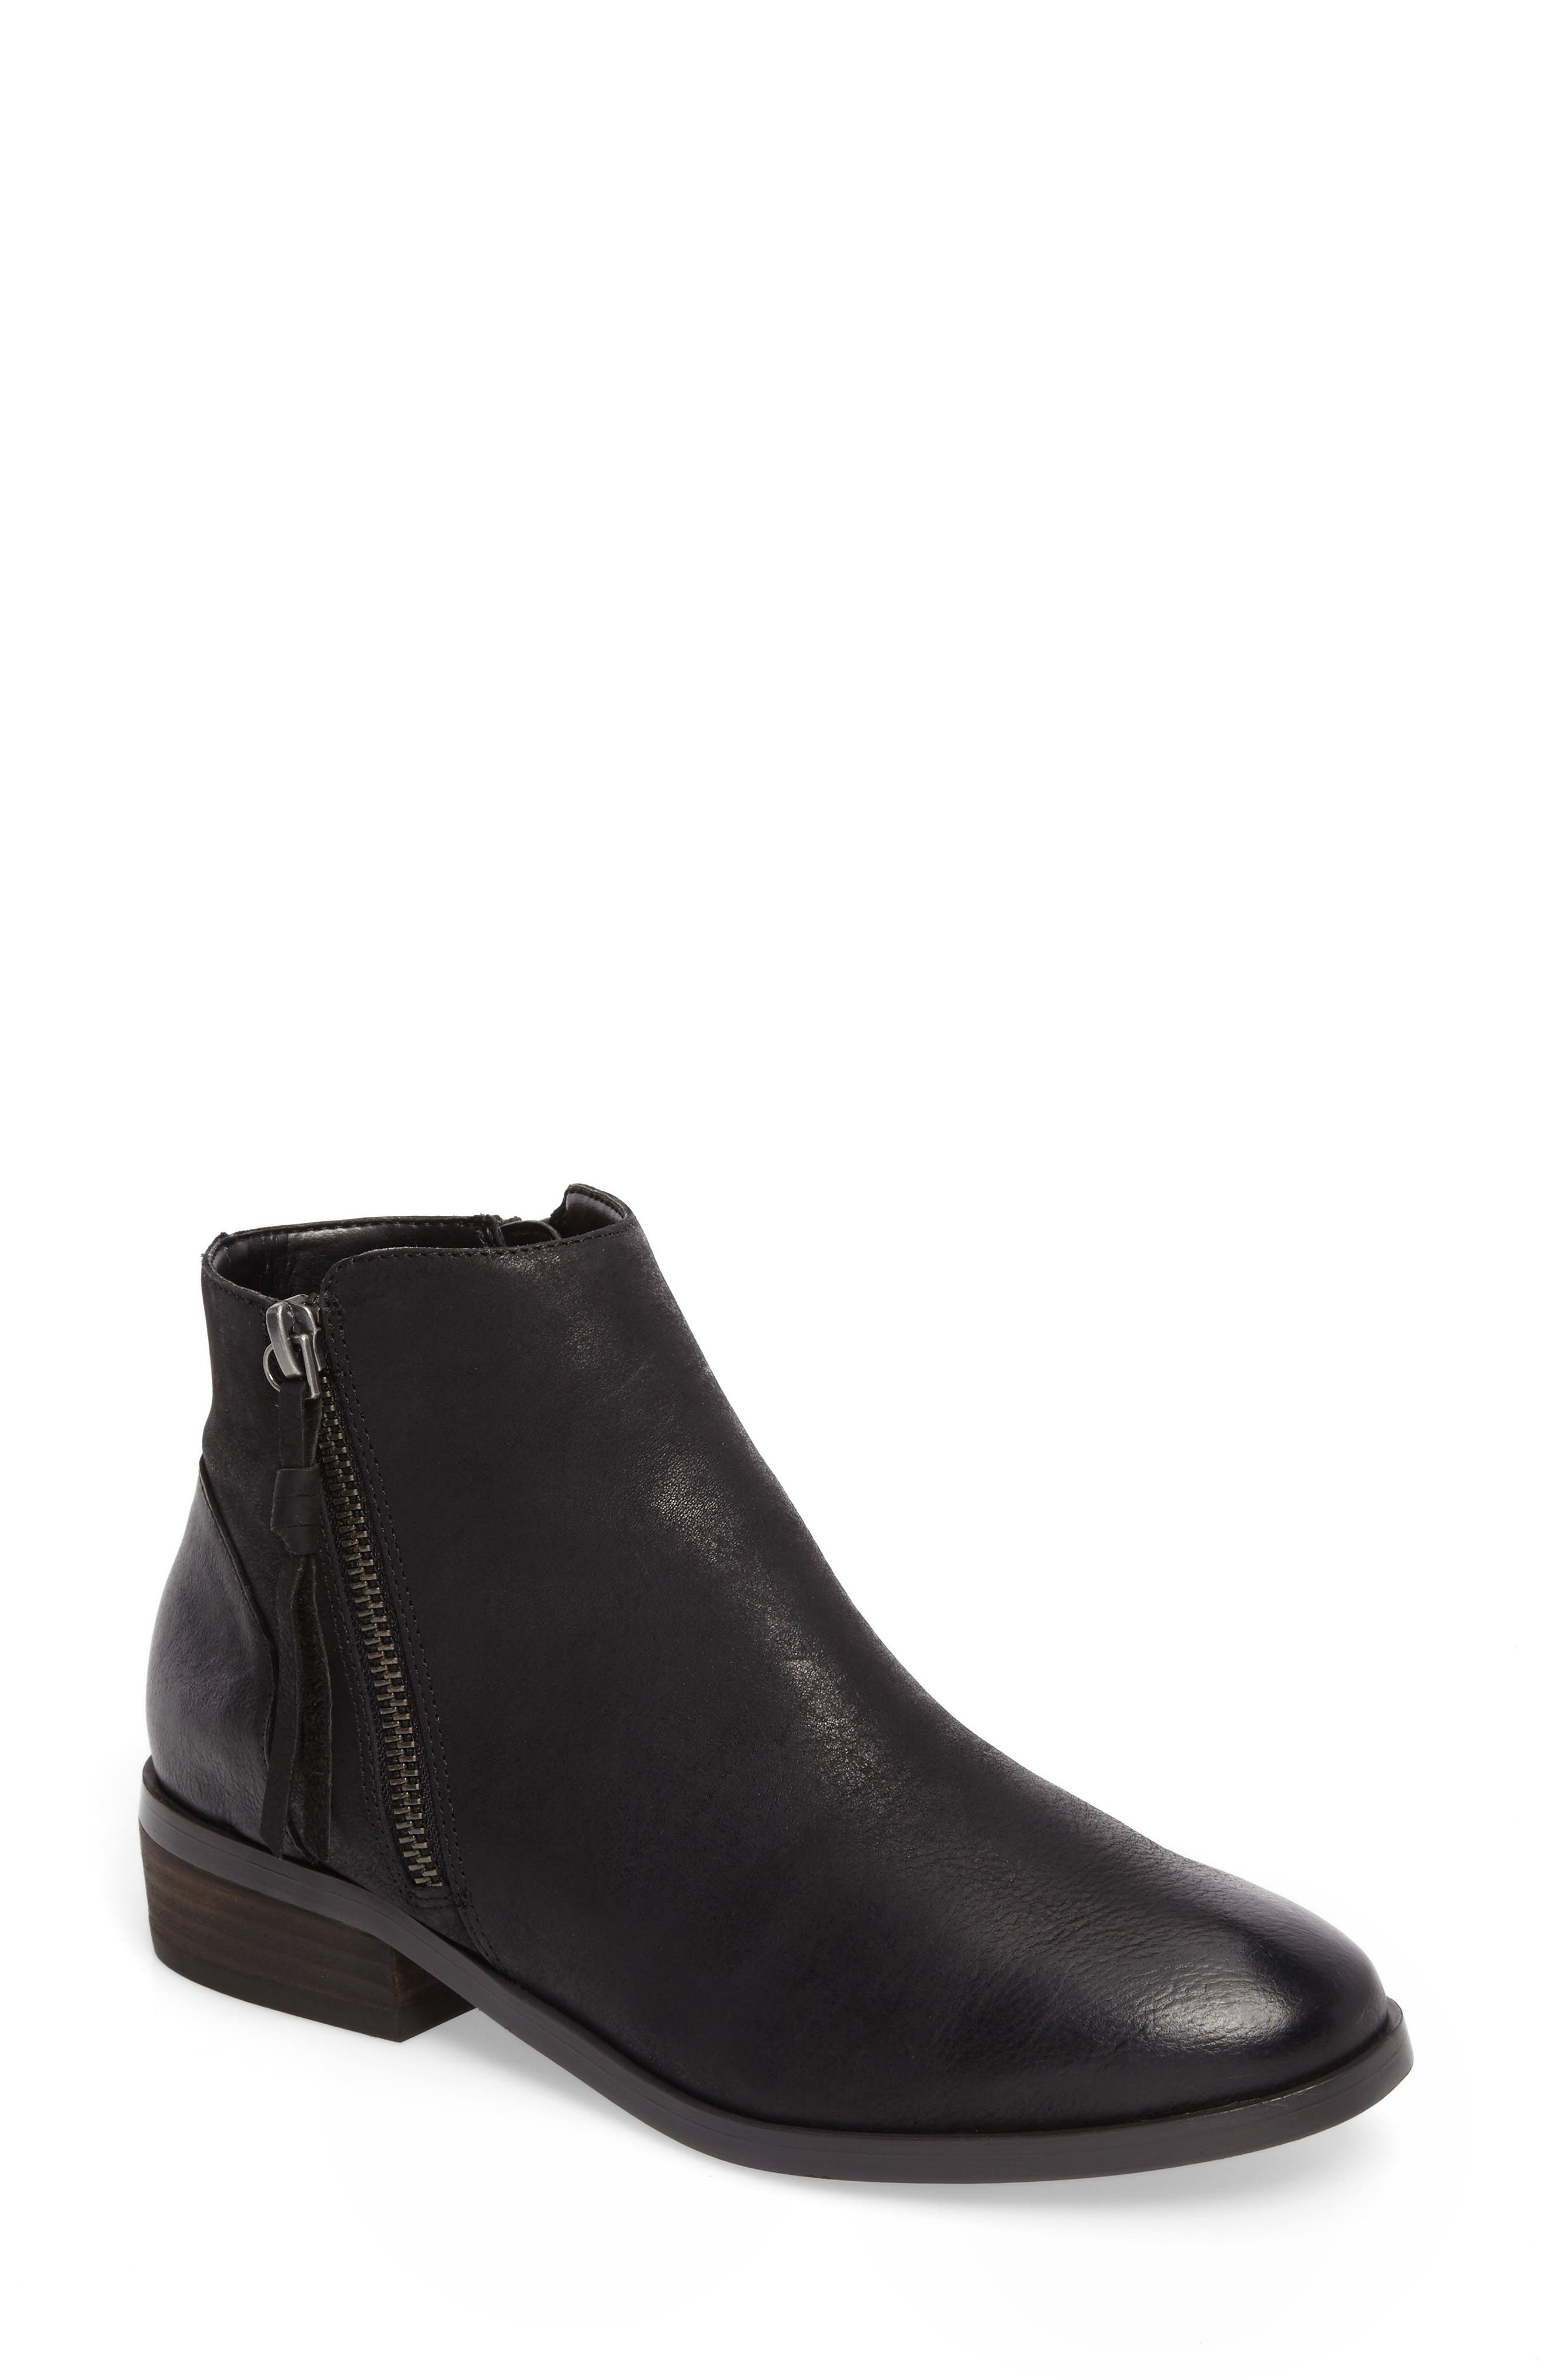 Abbott Bootie,                         Main,                         color, BLACK LEATHER